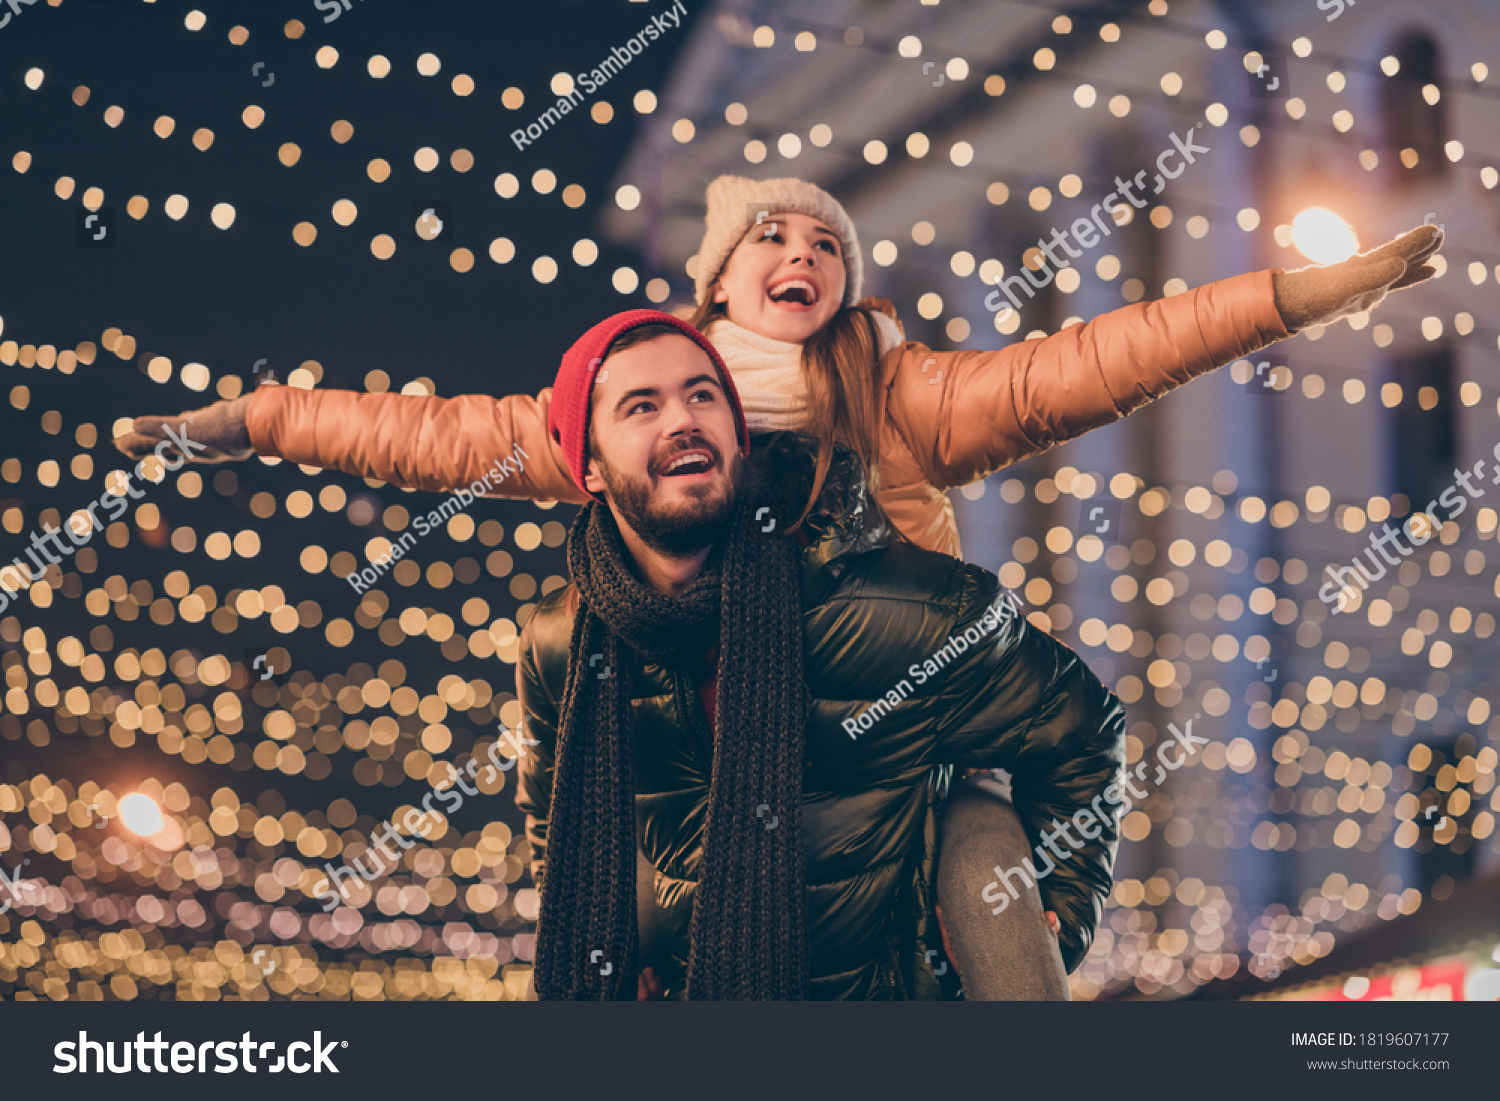 Photo of positive couple having fun christmas x-mas around evening outside illumination boyfriend piggyback girlfriend holding hands fly #1819607177